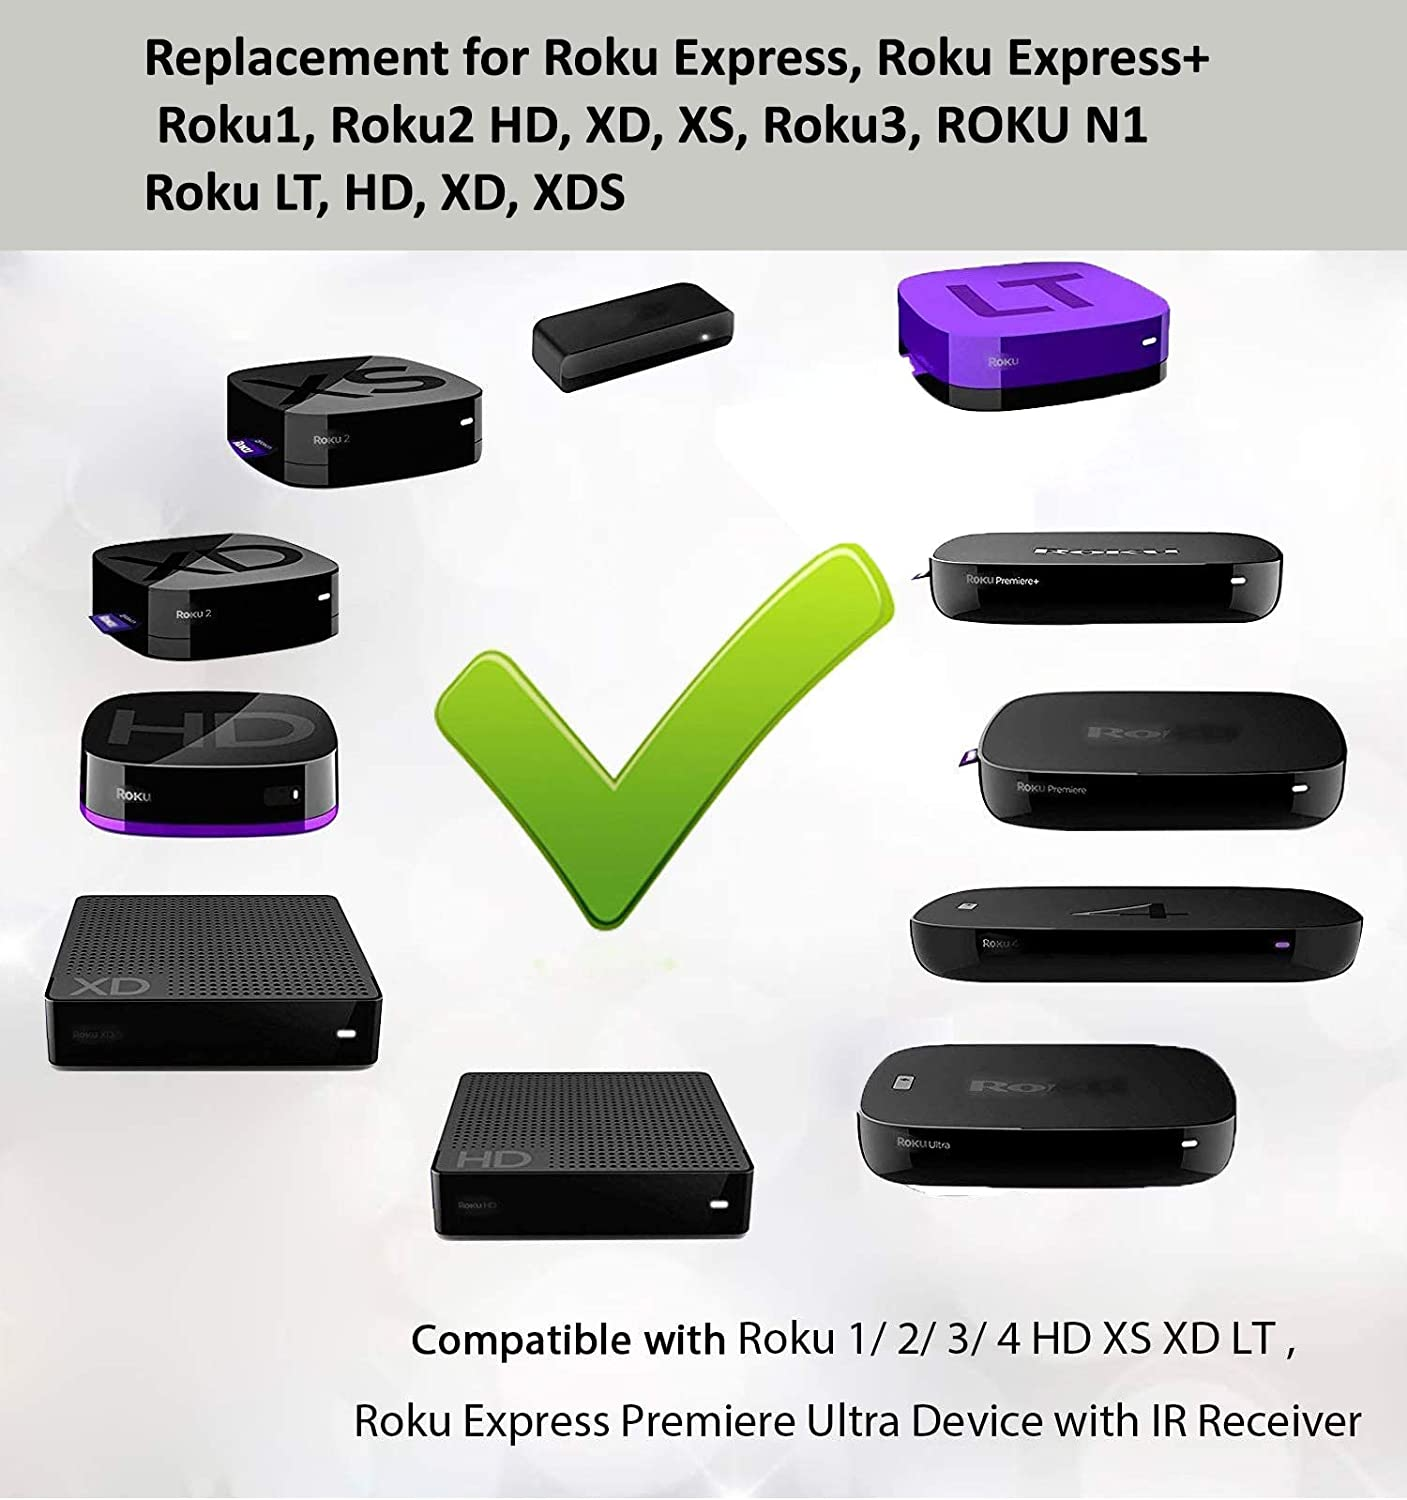 NOT Support for Any Roku Stick or Roku TV Remote Control Replaced for Roku 1 2 3 4 HD LT XS XD Roku Express 3900R Premiere 4620XB 4210XB 3900R 2500R 2700R 2450XB w//Channel Shortcut Buttons